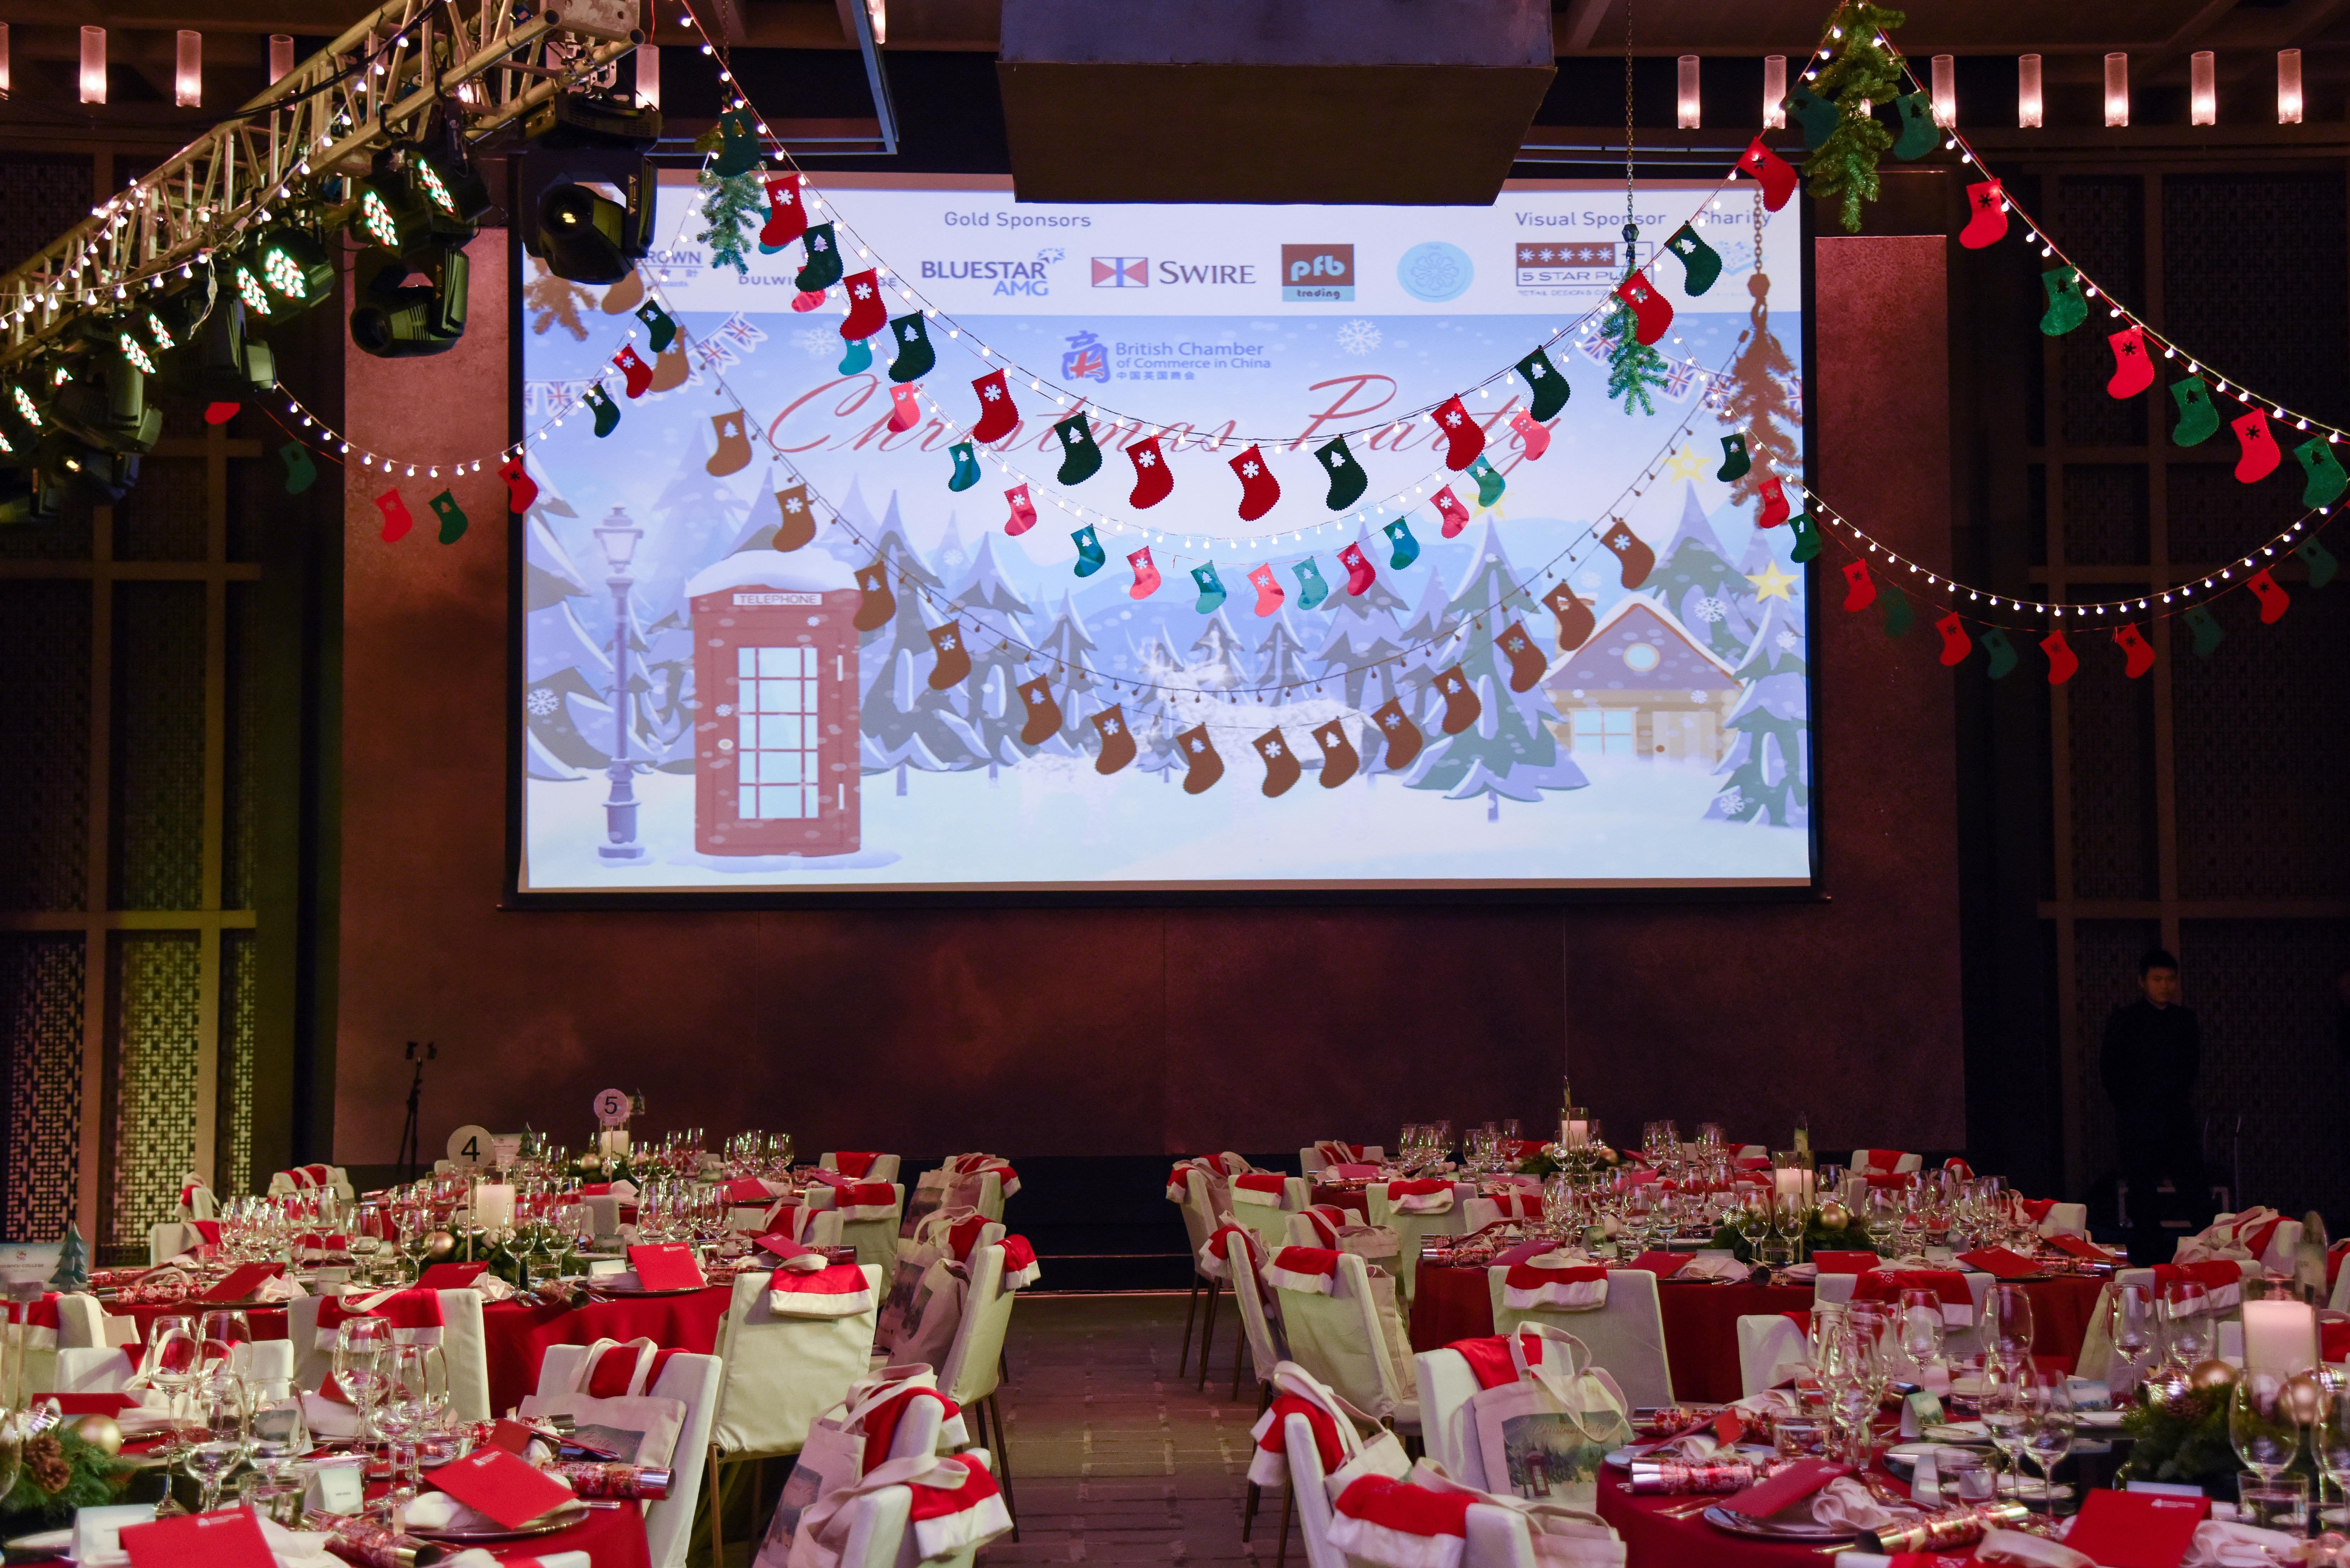 2018 BritCham Christmas Party - Review - British Chamber of Commerce